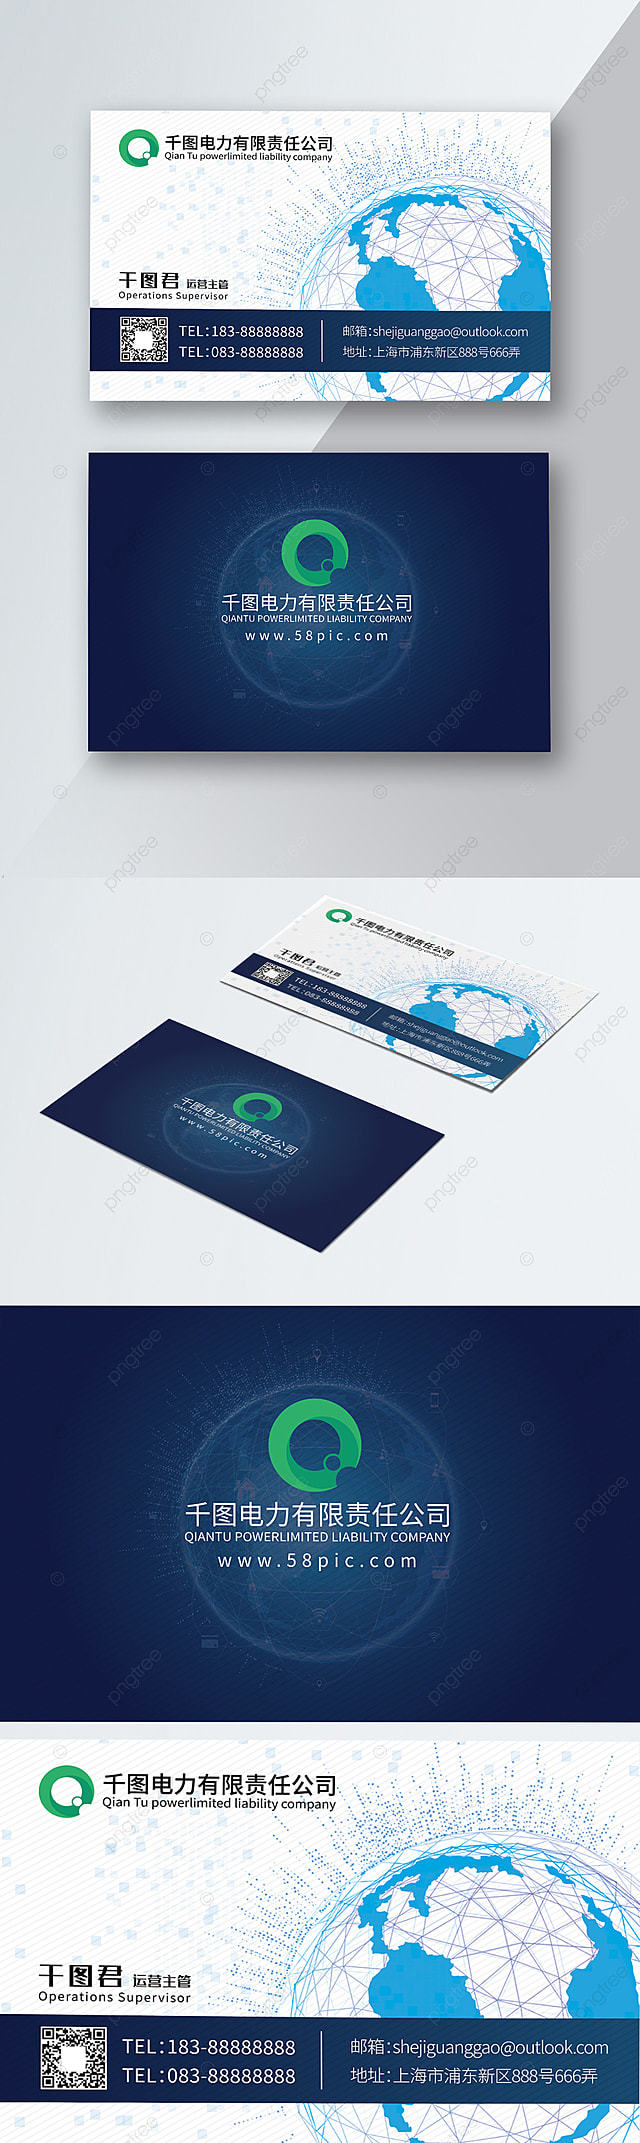 Engineer Business Templates Psd 36 Design Templates For Free Download